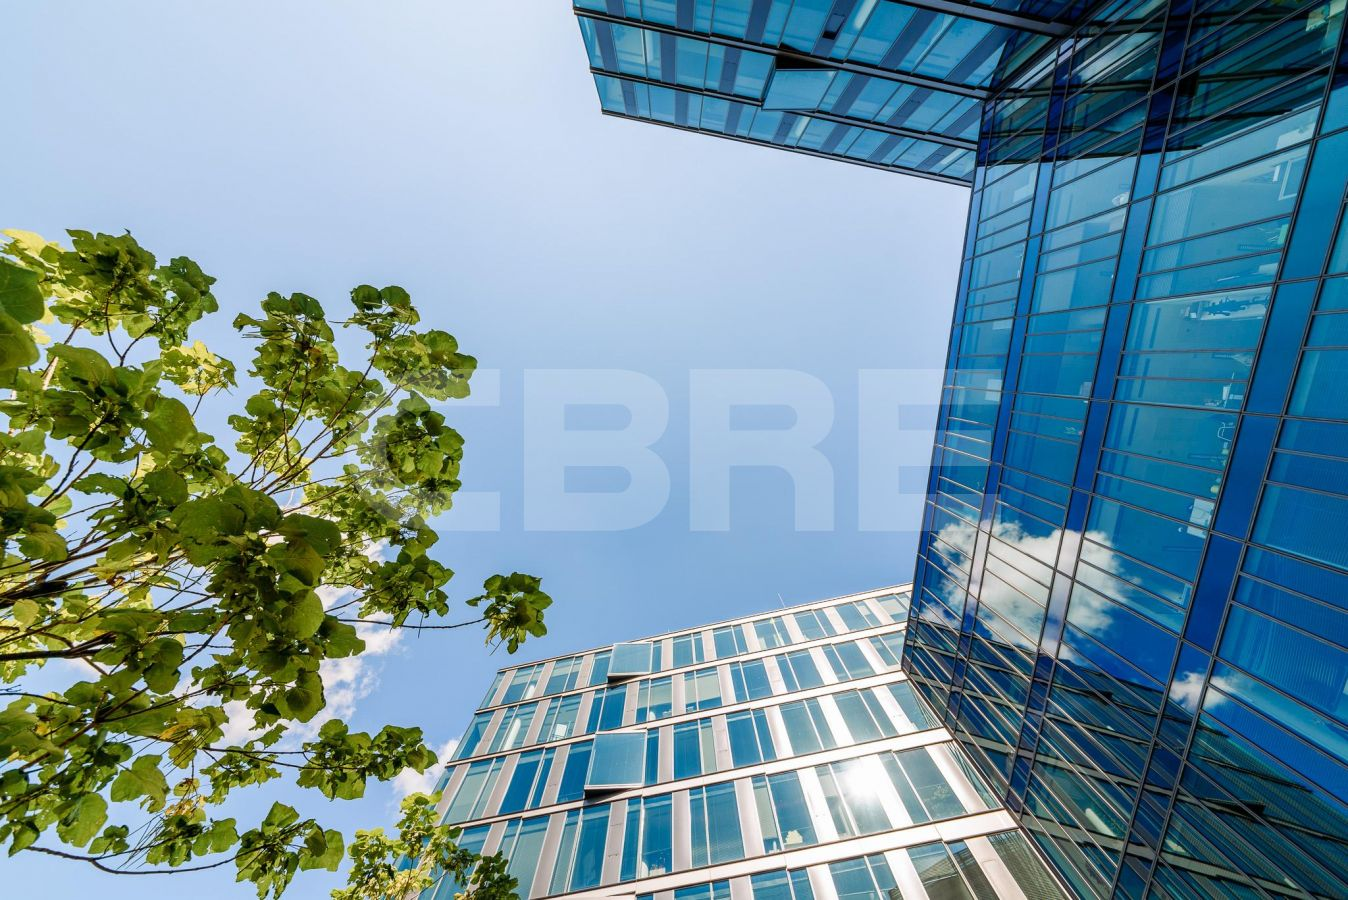 Digital Park phase III, Bratislava - Petržalka | Offices for rent by CBRE | 5